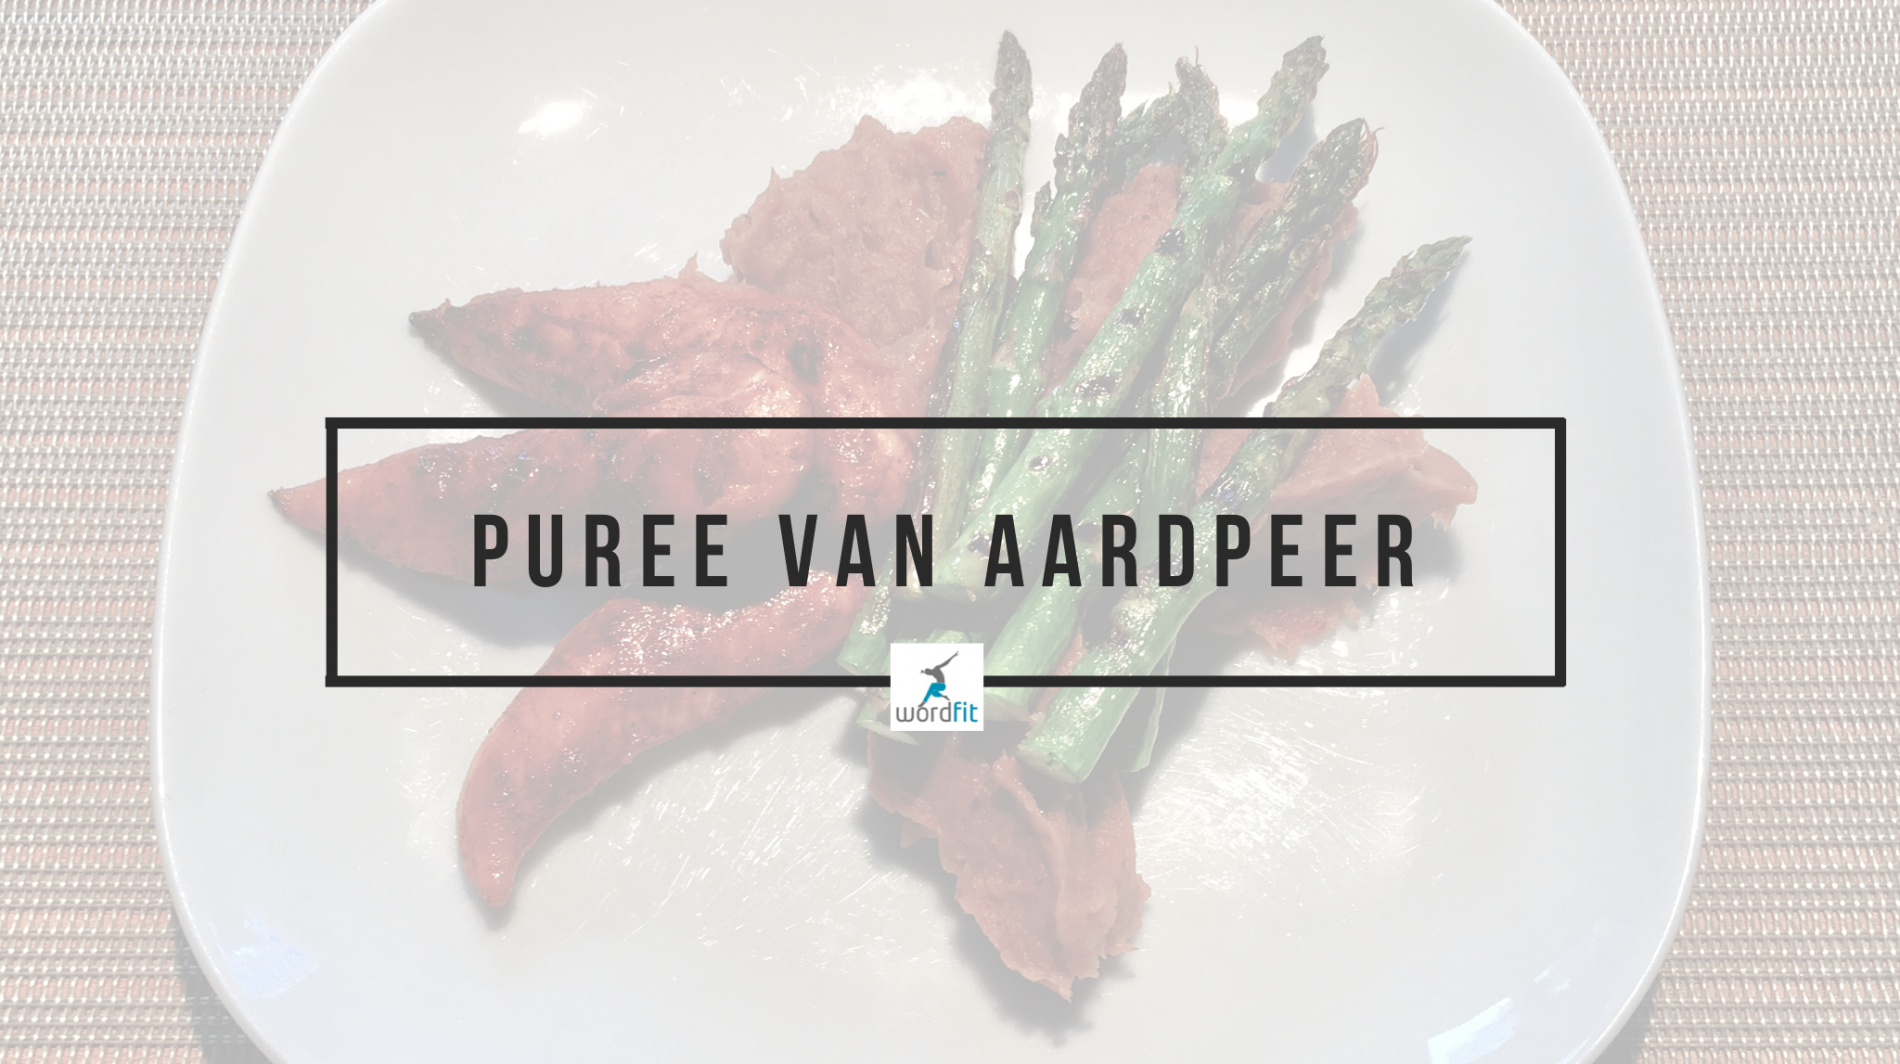 Puree van aardpeer WordFit.be